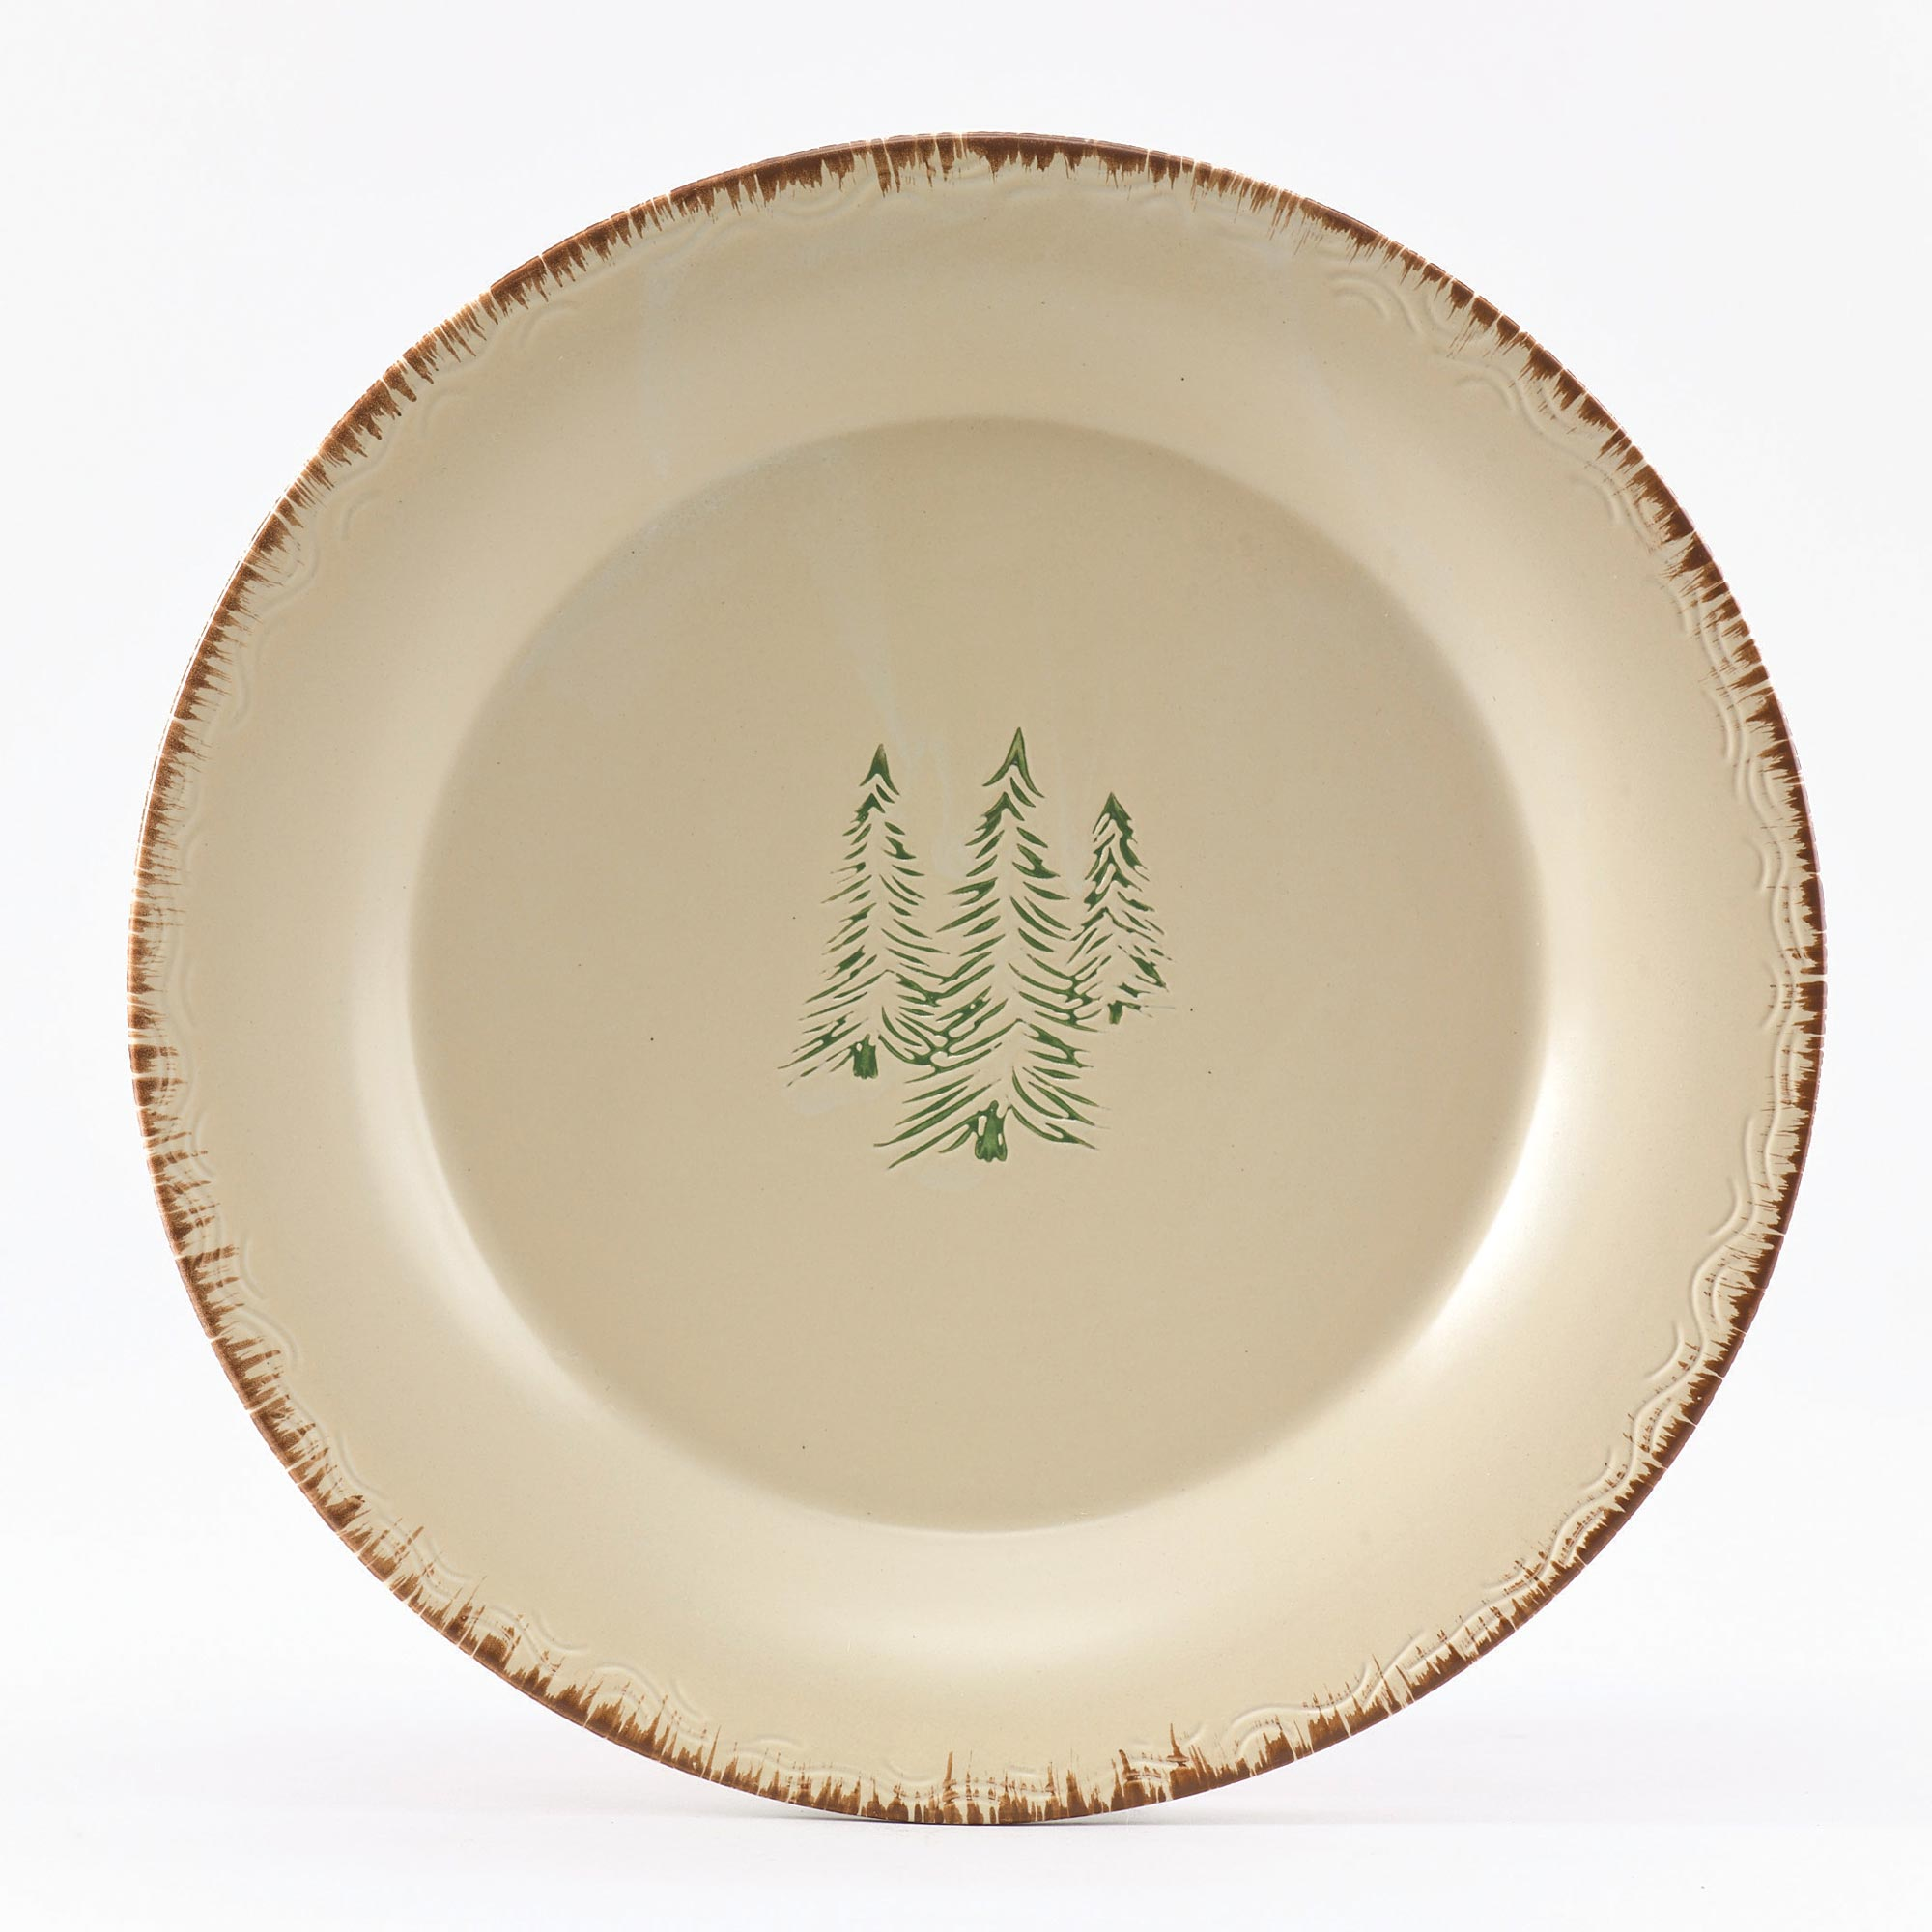 Rustic Retreat Dinner Plate Set Ebay